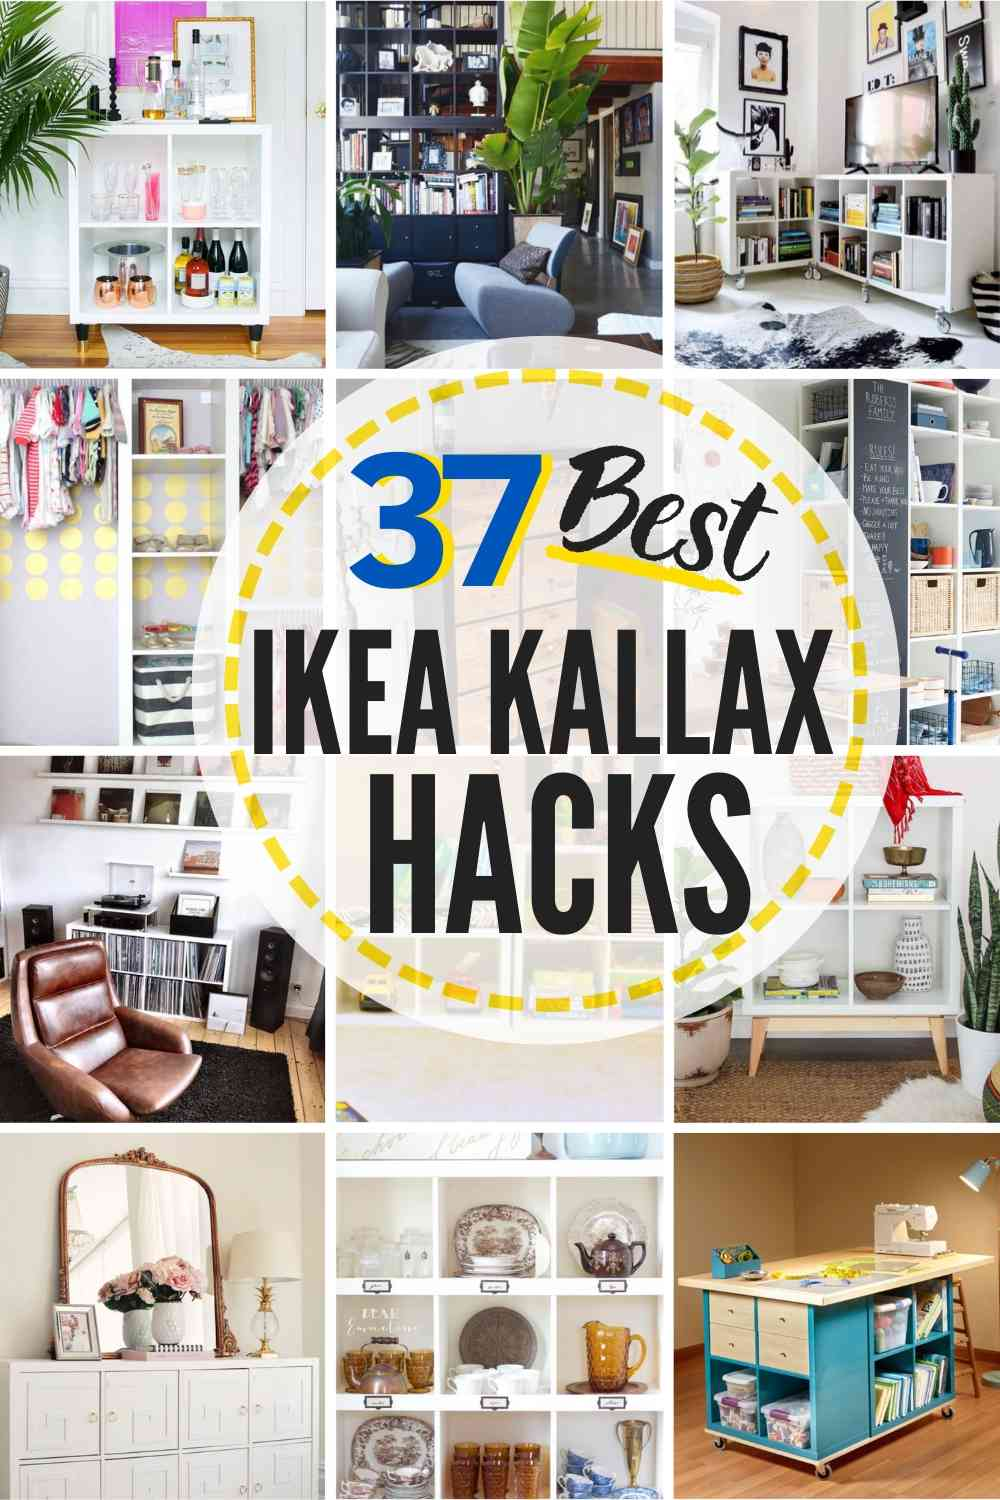 9 Ikea Kallax Hack Ideas That Will Blow Your Mind  The Heathered